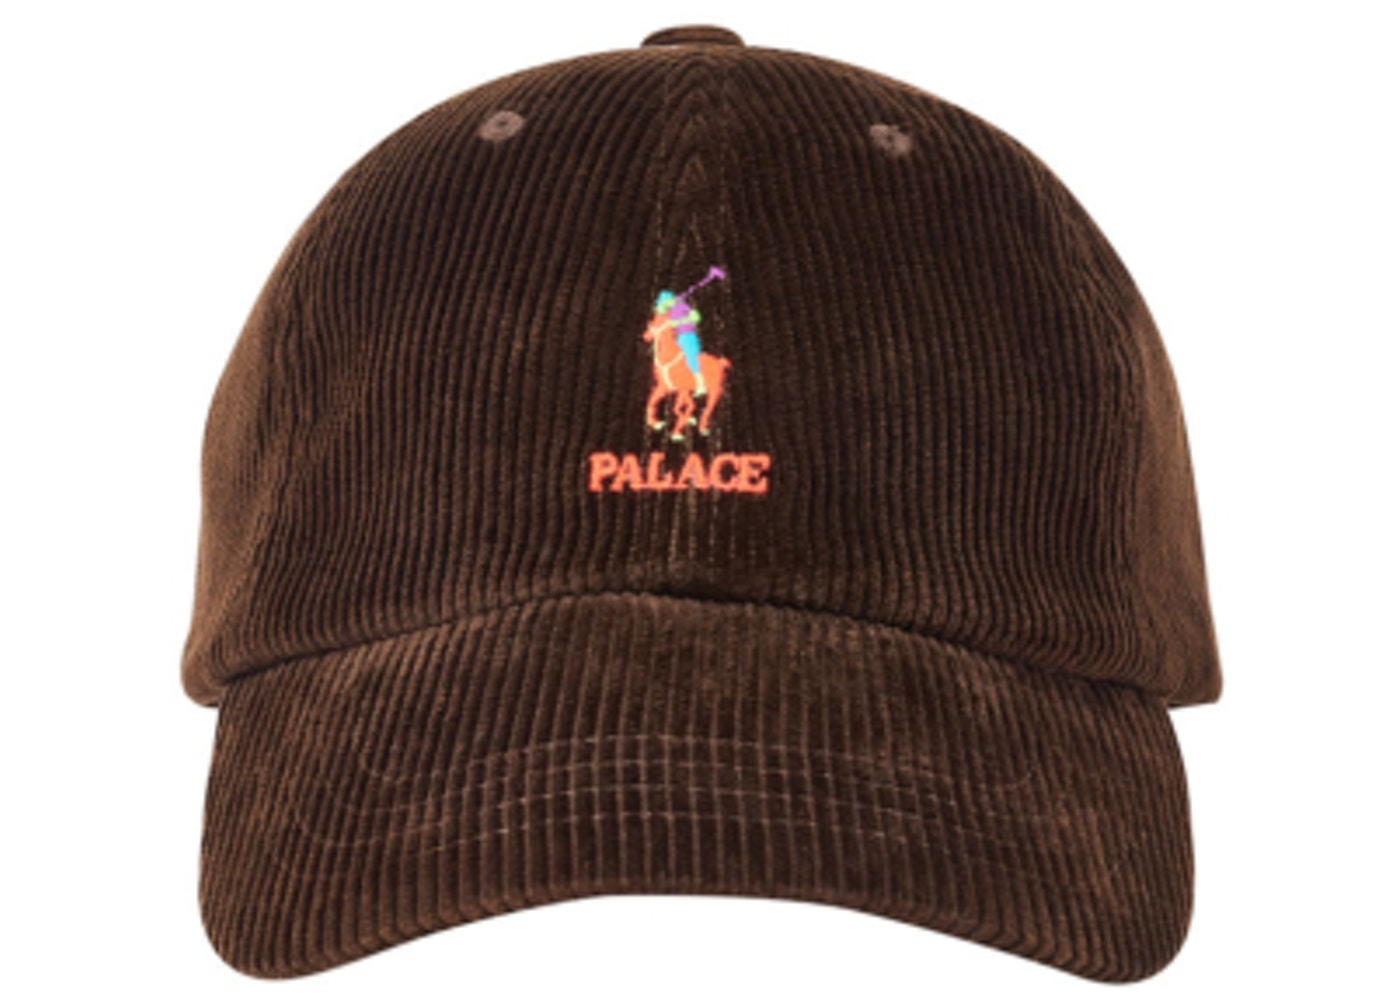 e816bf9c4d237d Palace Ralph Lauren Corduroy Classic Polo Cap Mohican Brown - FW18